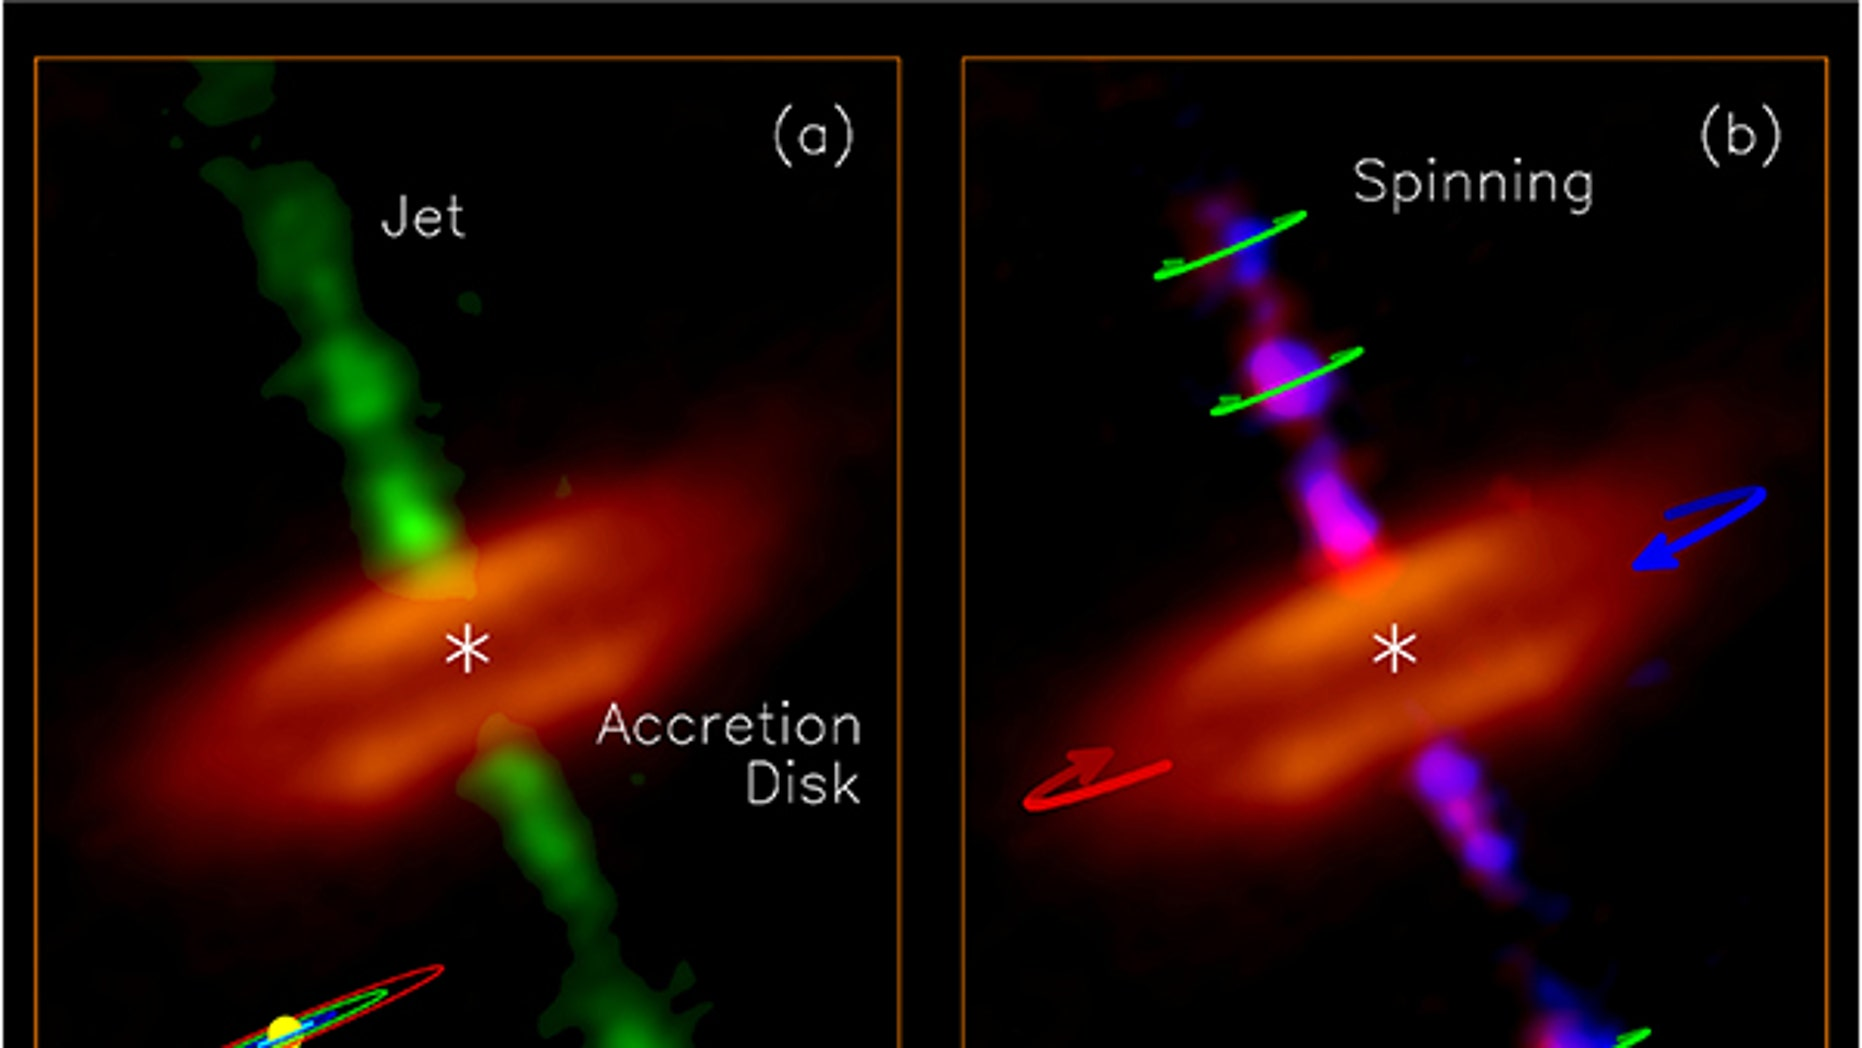 Observations from the ALMA telescope in Chile revealed spinning jets of material (green) ejecting from inside the accretion disk around a young star, which ALMA could picture at a resolution of 8 astronomical units. A model of the solar system is included in the lower left for scale.